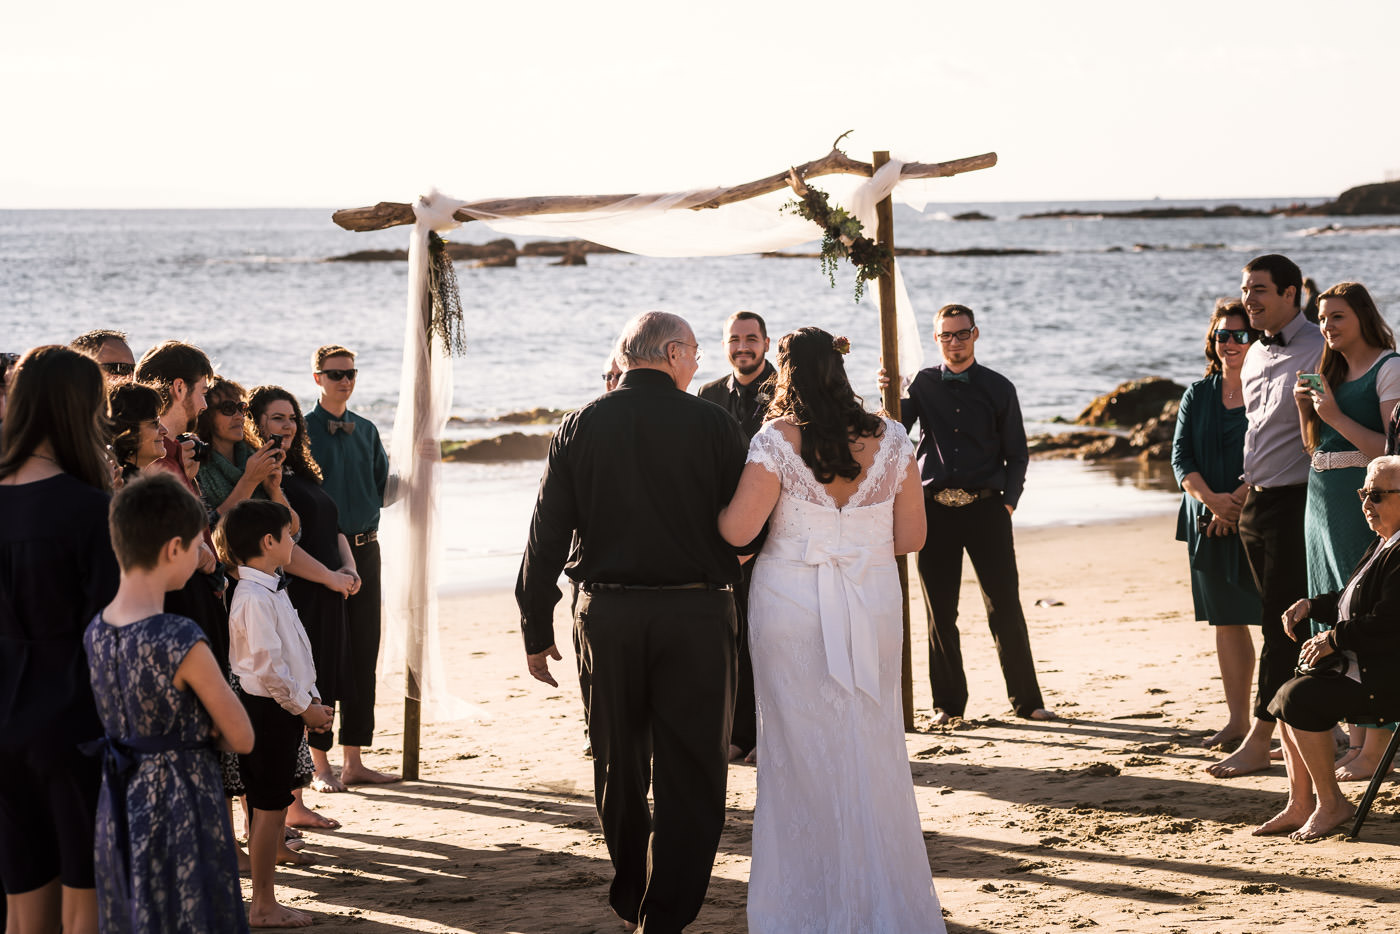 Couple prepares to tie the knot at their Laguna Beach wedding in California.